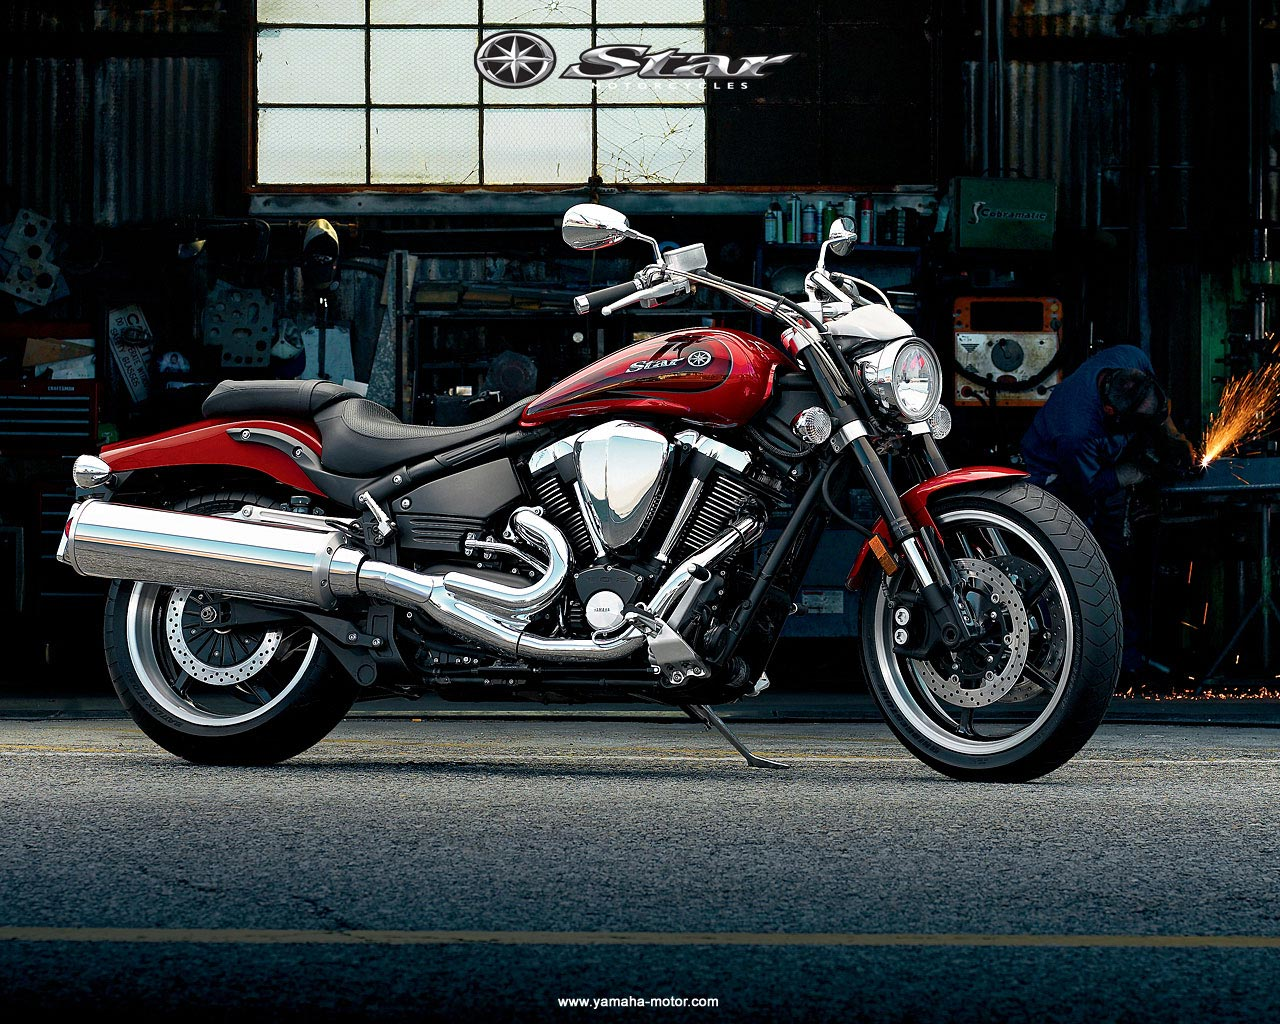 2008-Yamaha-RoadStar-Warriora.jpg (1280×1024)